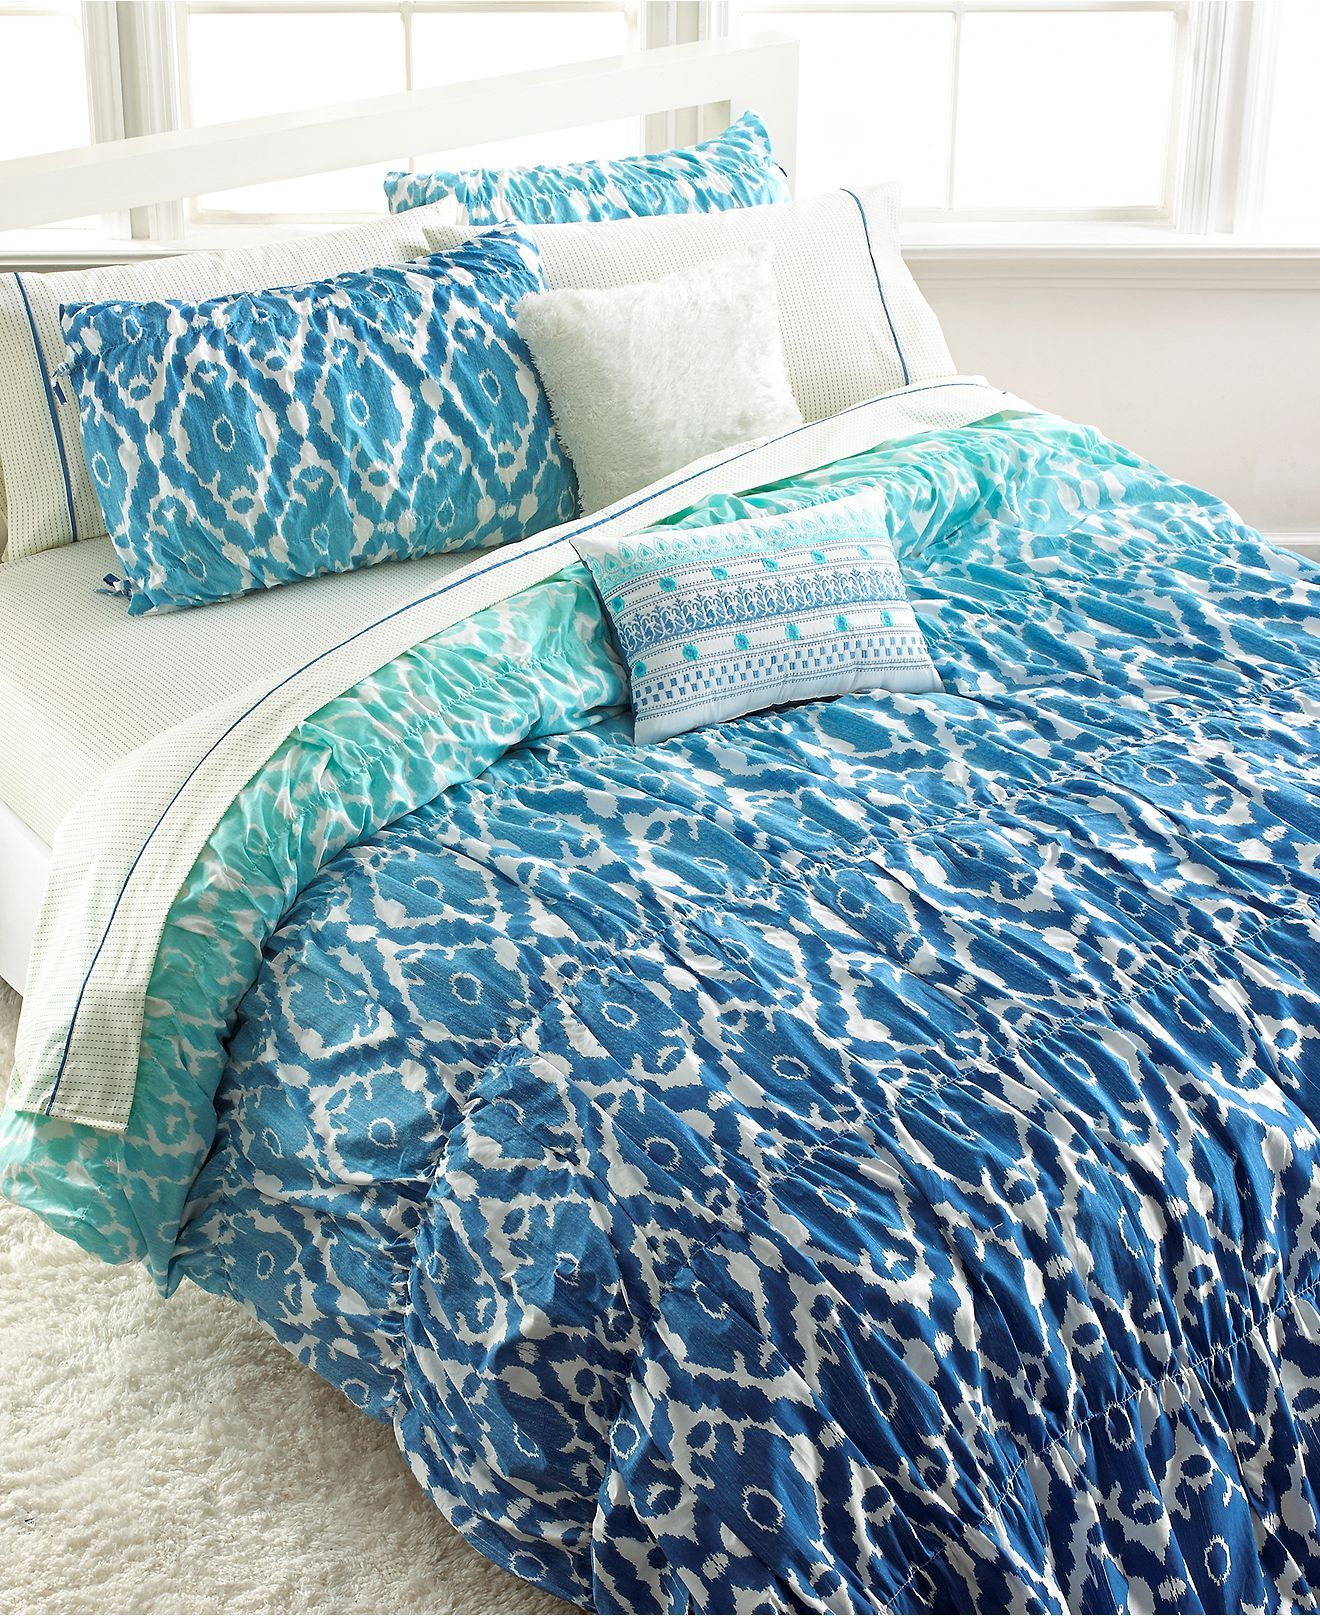 Teen Vogue Bedding Watercolor - Seventeen ombre ikat full queen comforter set bed in a bag bed